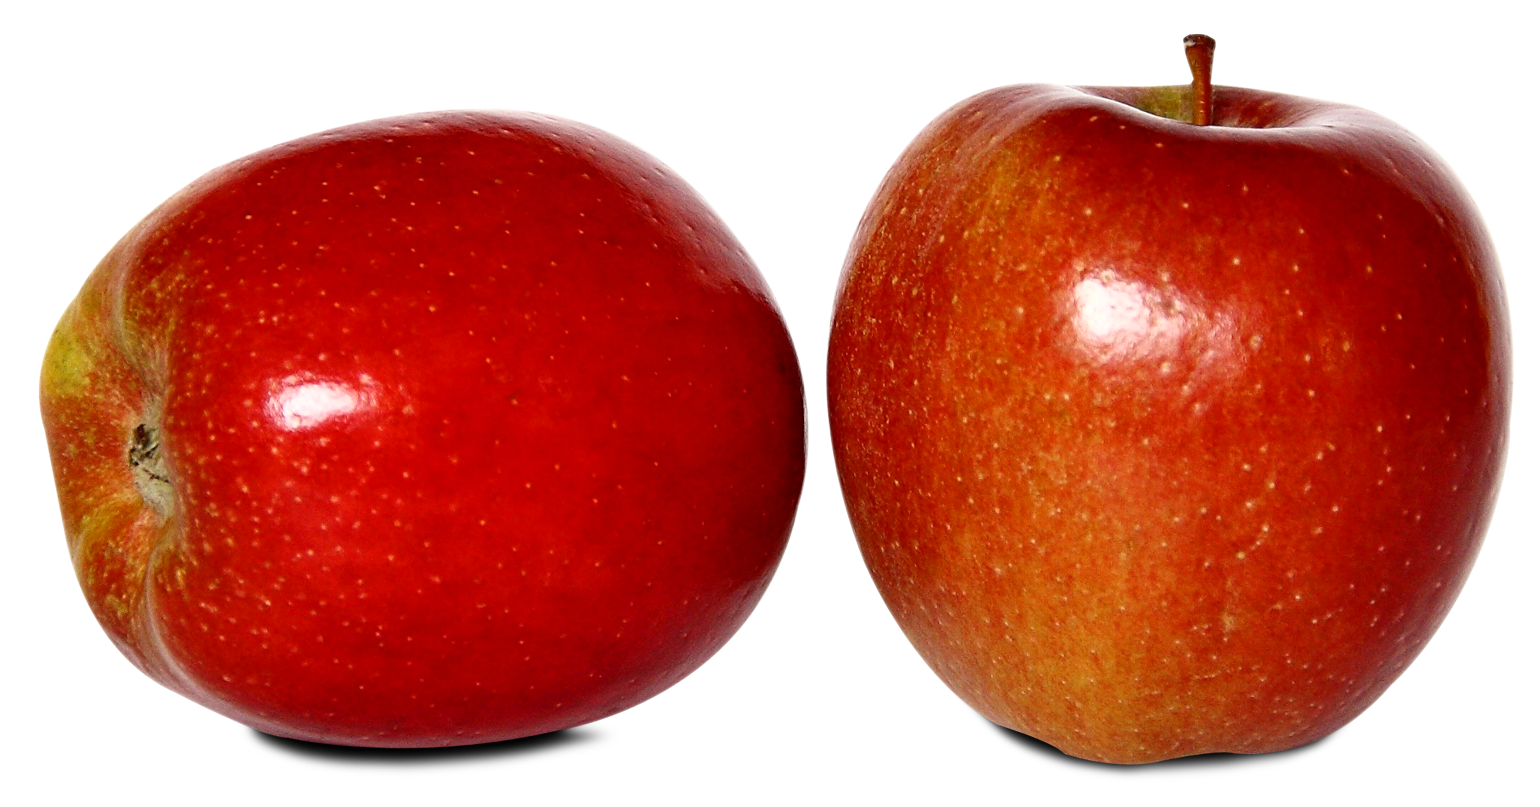 Two Red Ripe Apples PNG image.